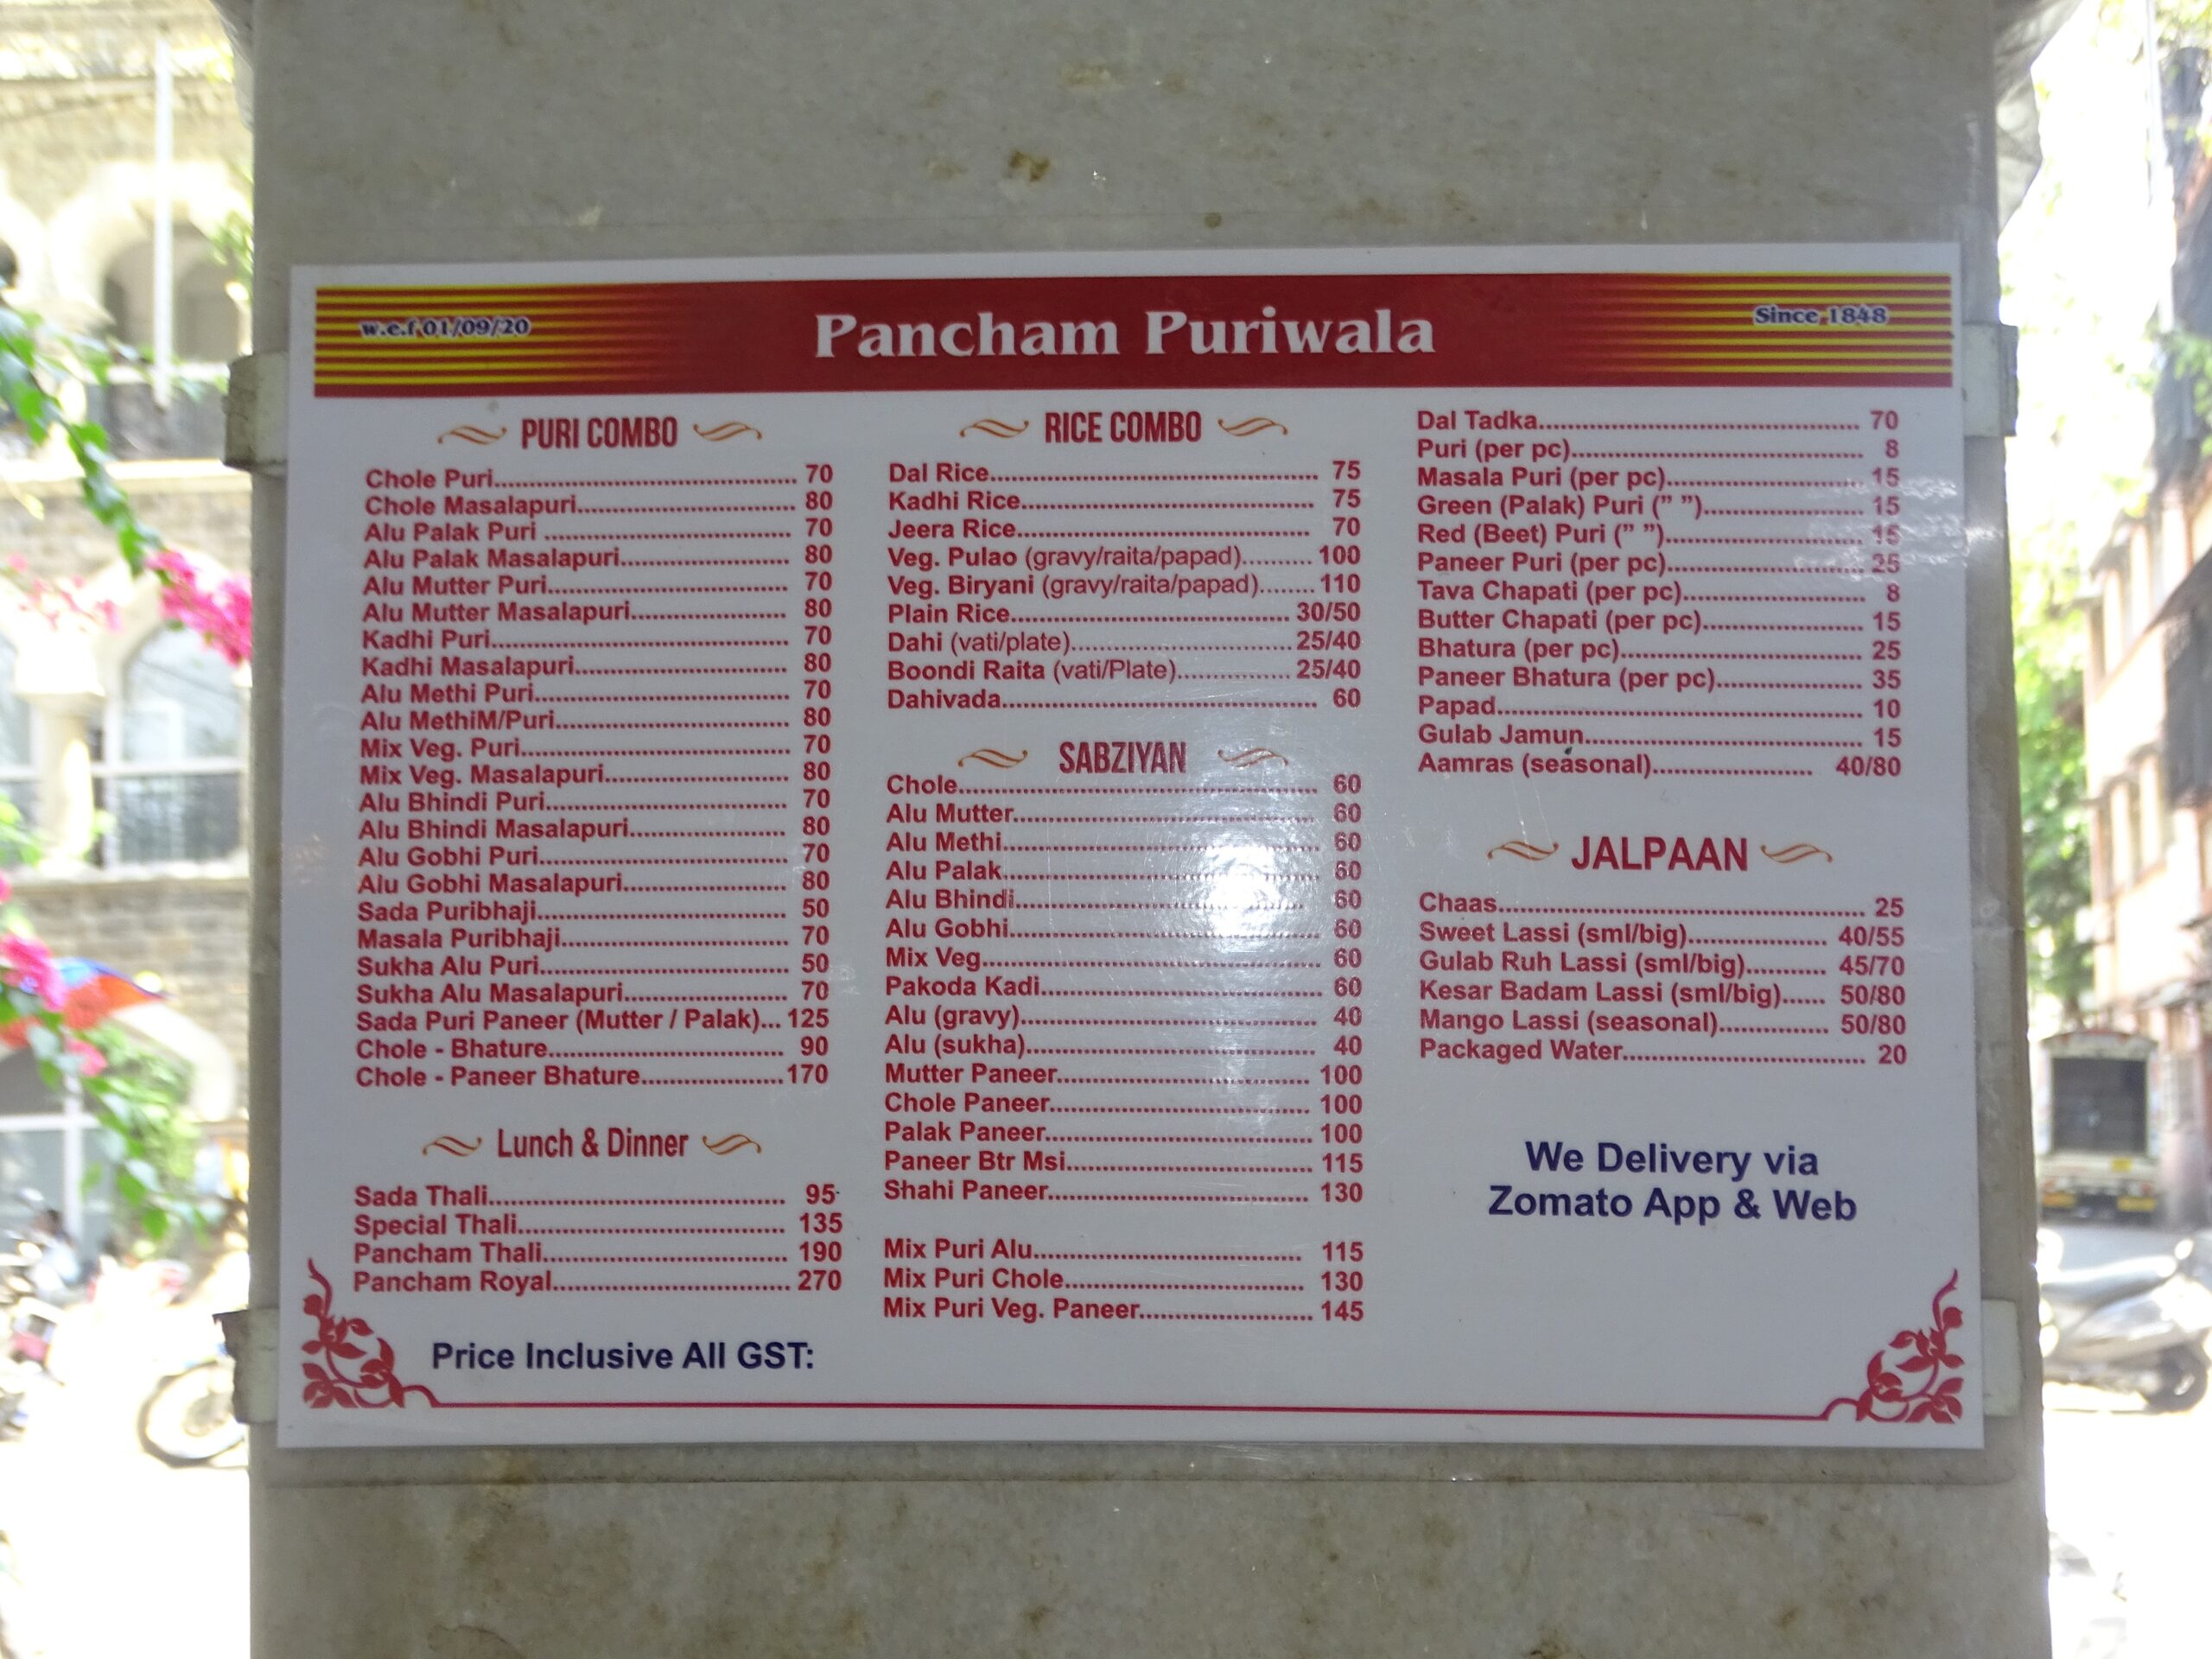 Menu Rate List of Pancham Puriwala (near Chhatrapati Shivaji Maharaj Terminus - CSMT, Mumbai, Maharashtra, India)